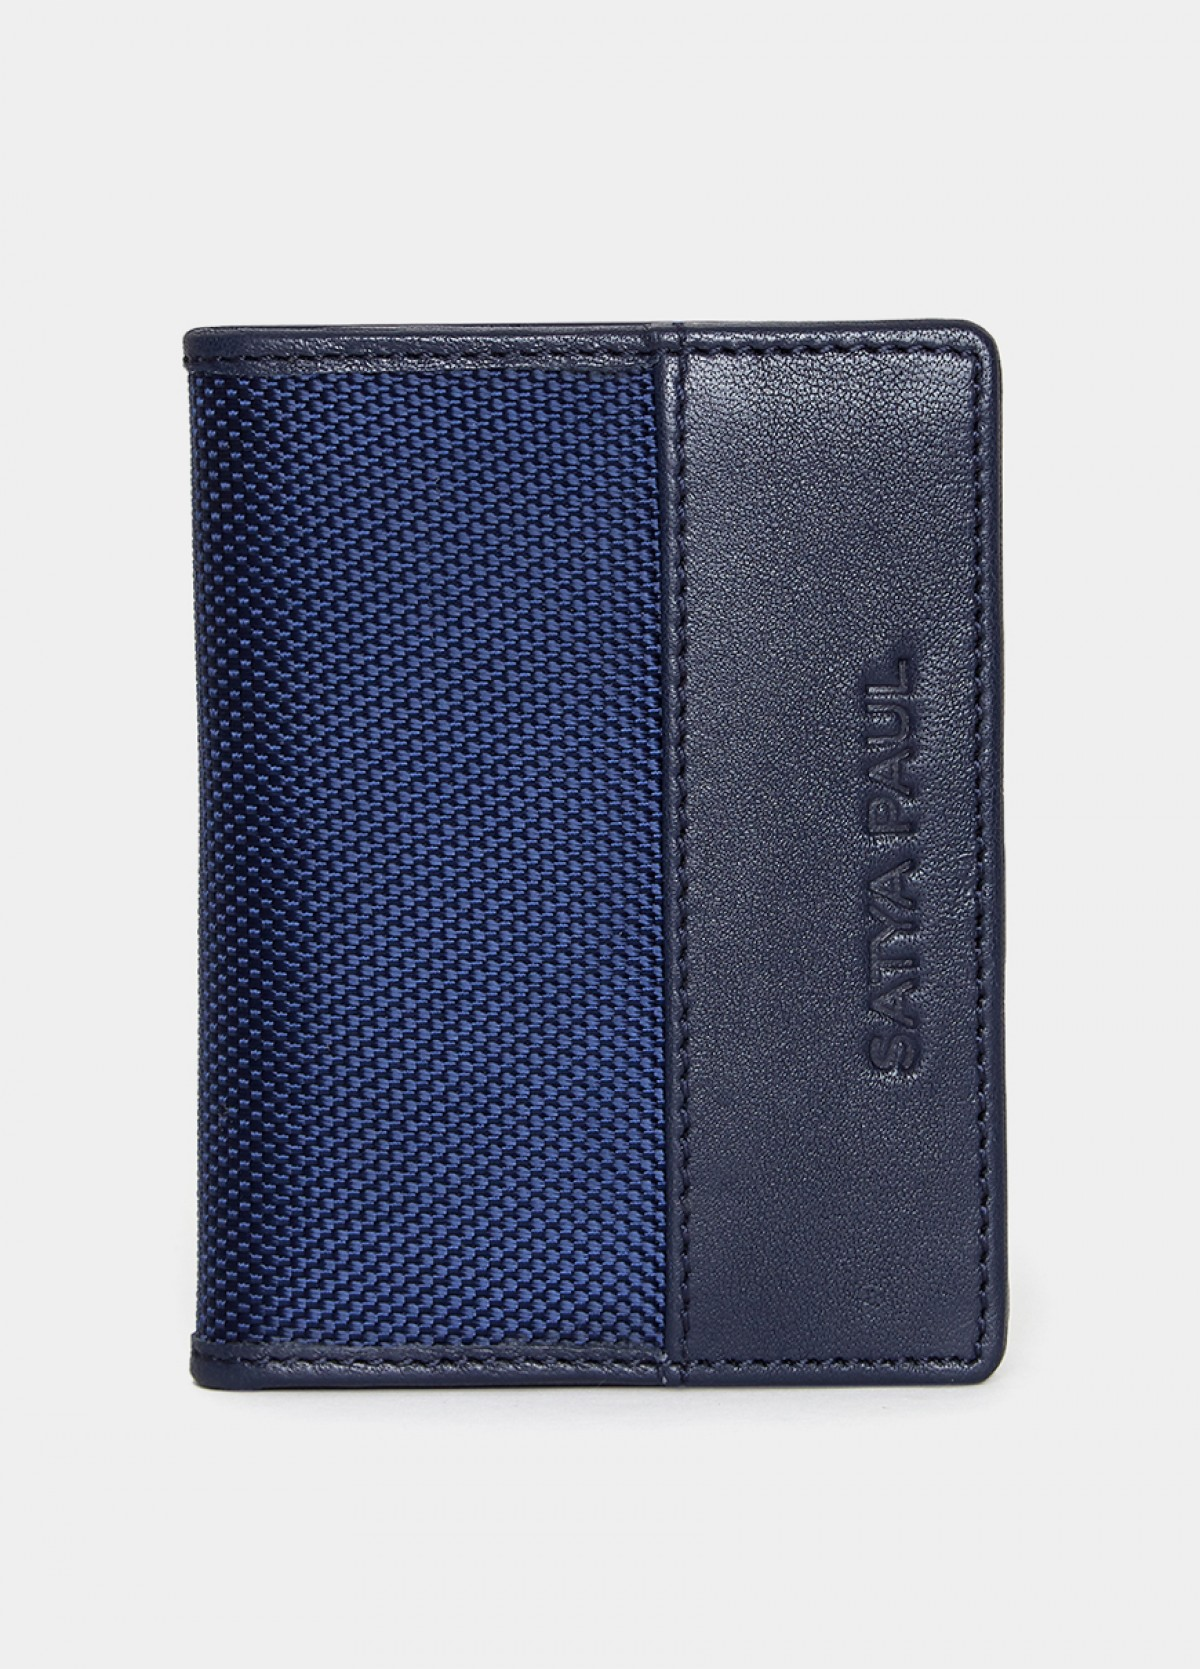 The Him & The City Men'S Card Holder